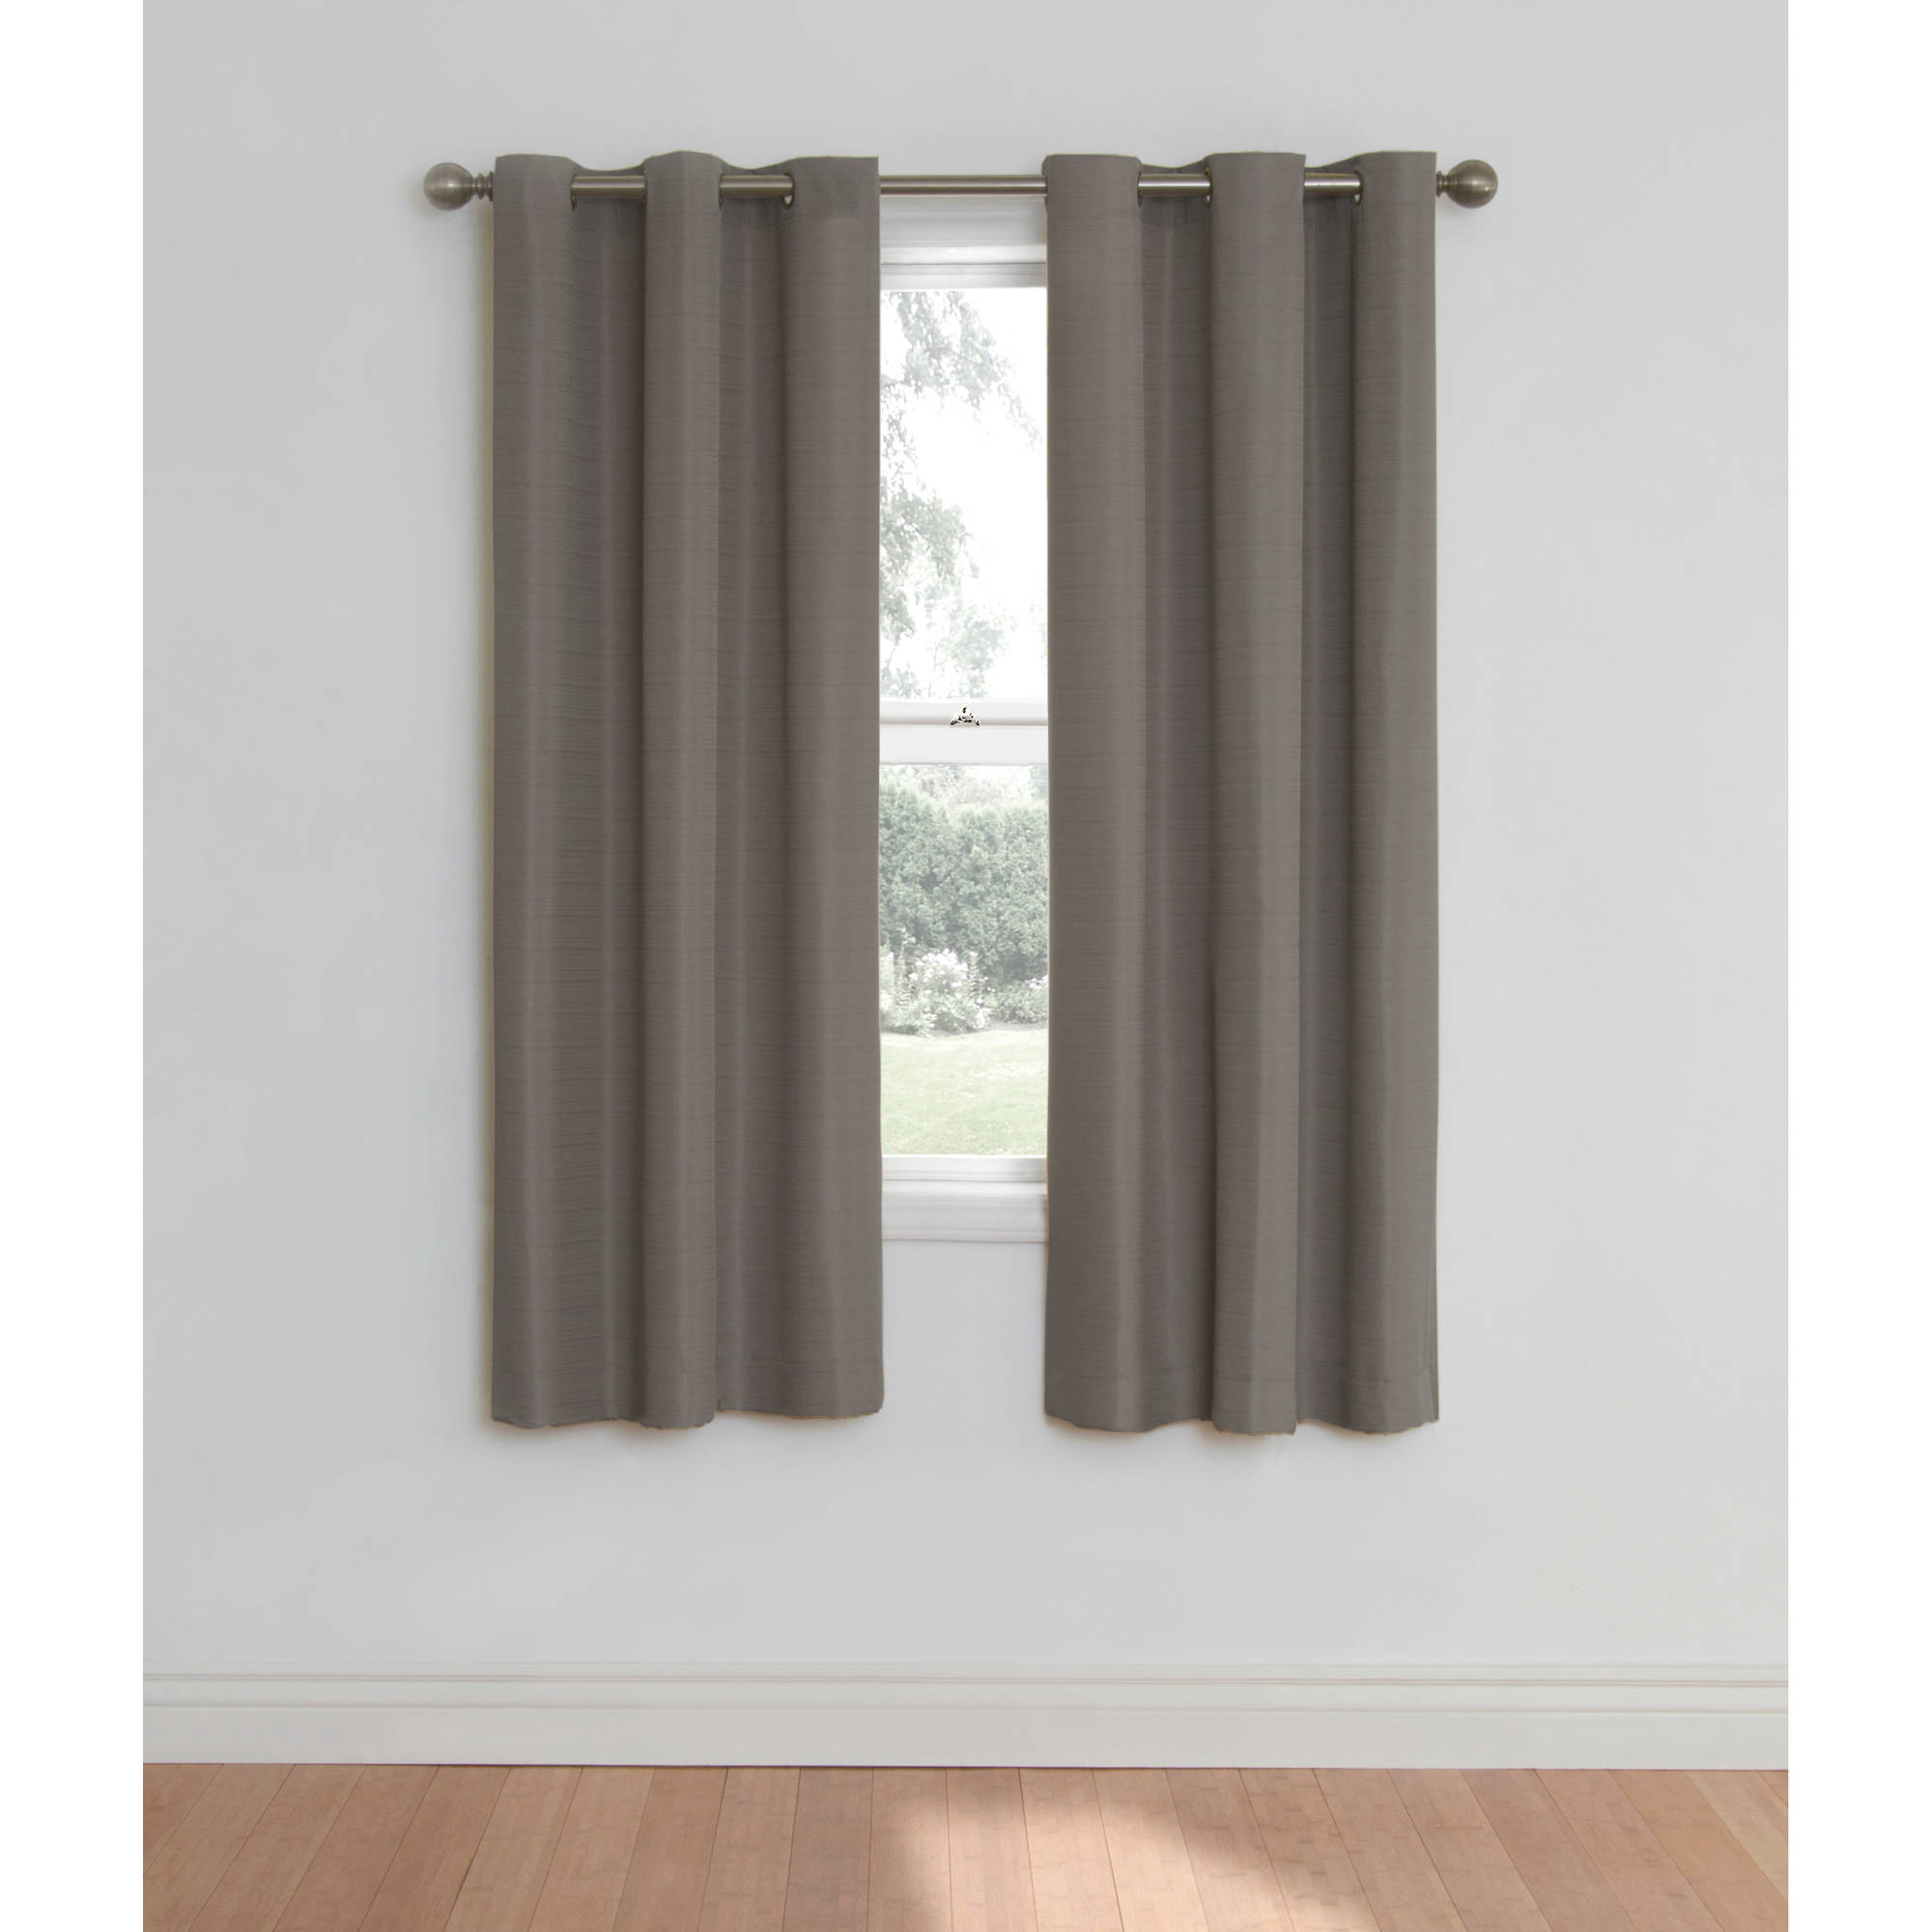 Curtain ~ 34edf0c3d0a4 1 Walmart Blackoutins Mainstays Room With Solid Thermal Insulated Blackout Curtain Panel Pairs (View 15 of 30)